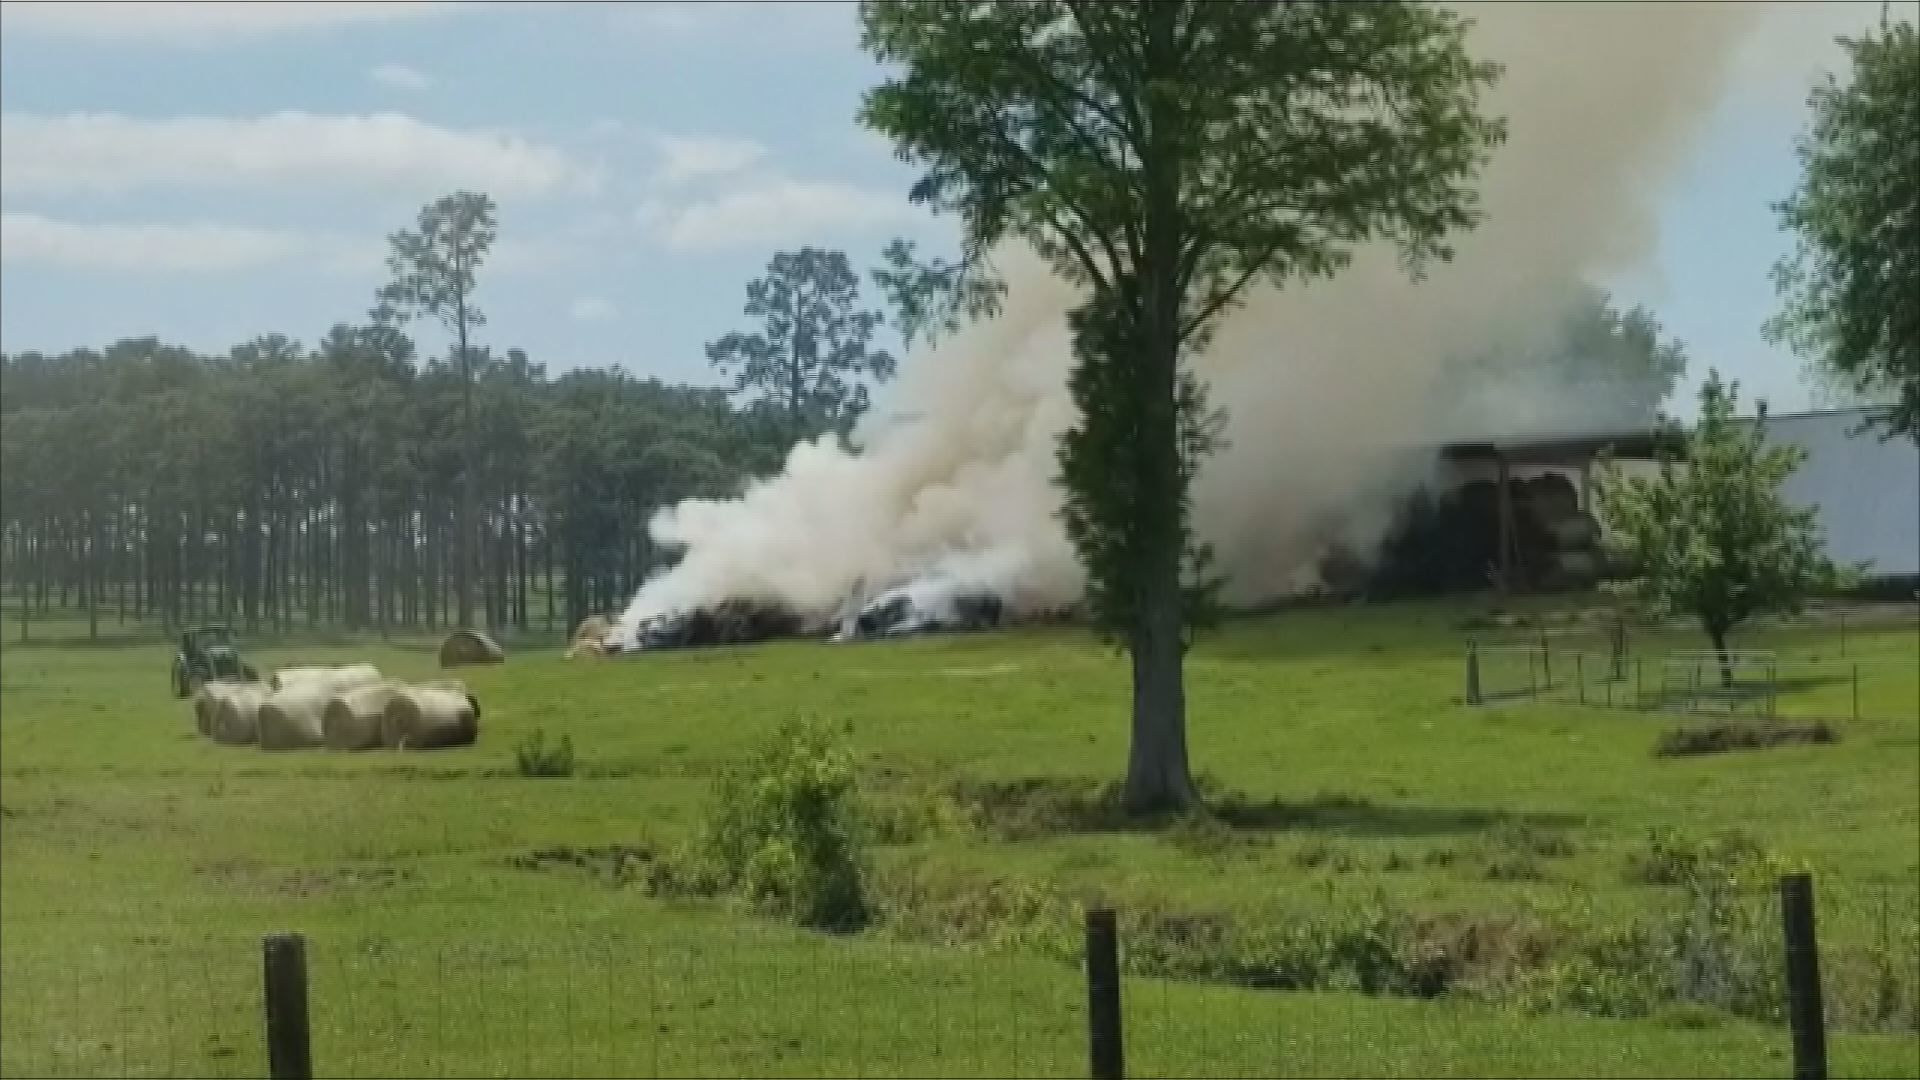 Hay barn fire video in Loxley